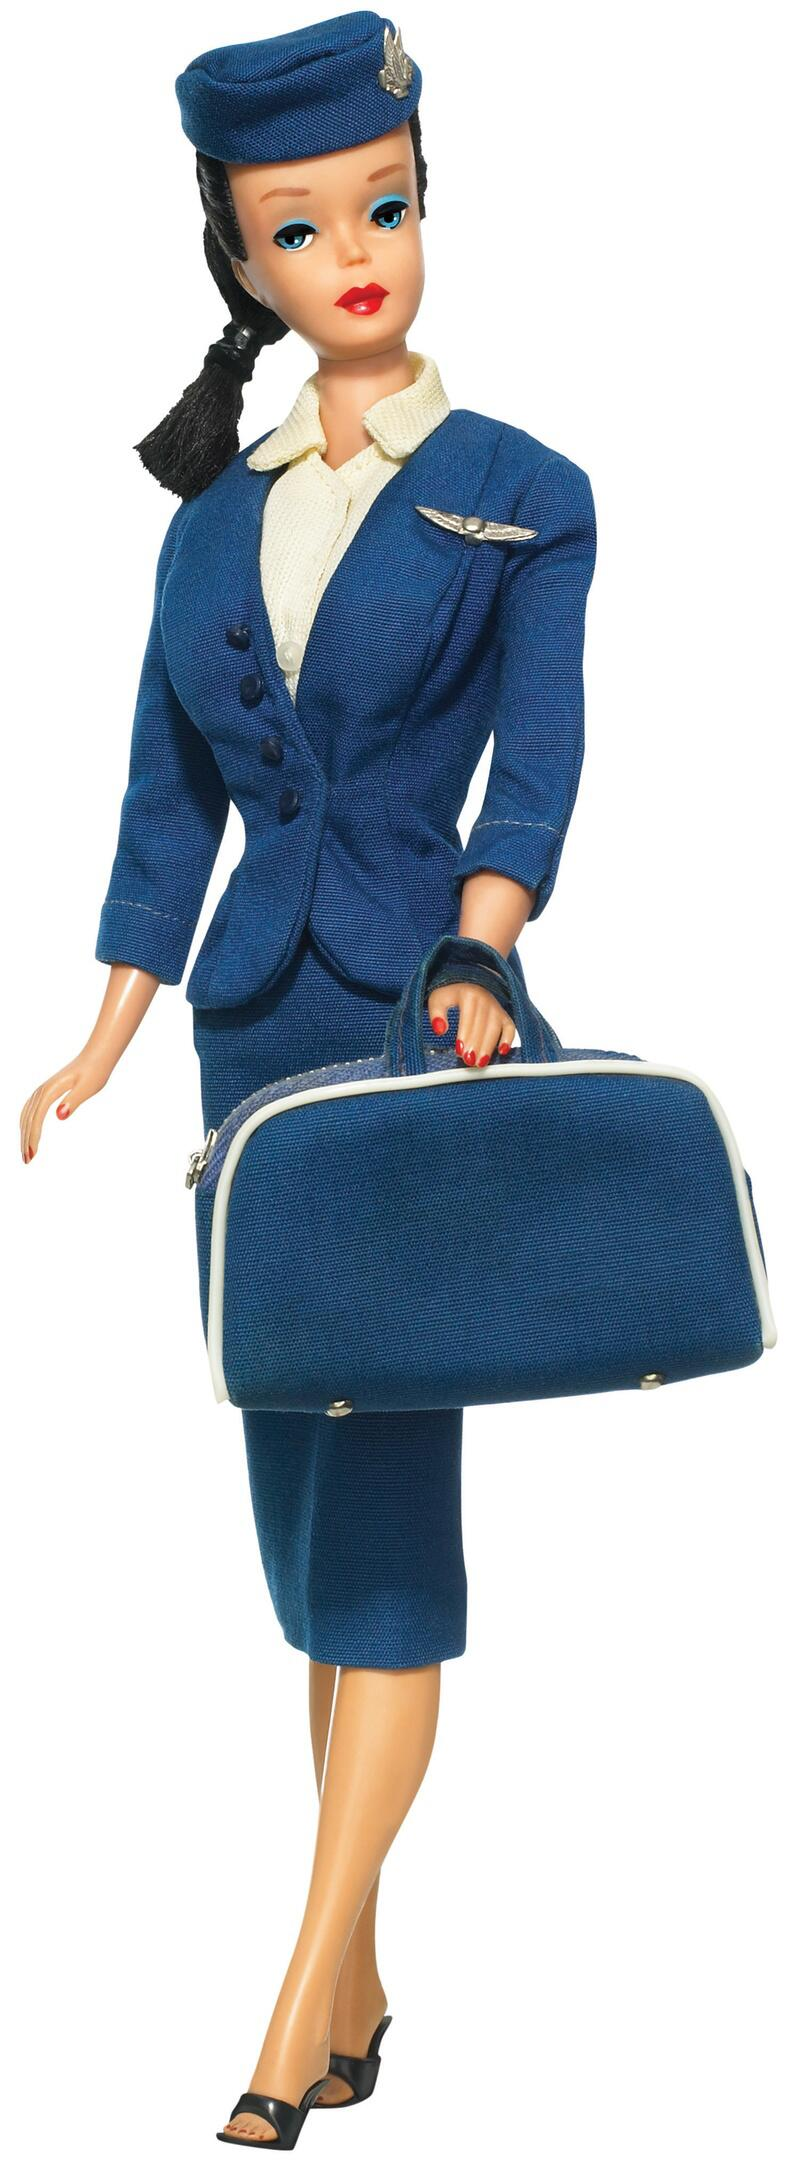 Bild zu 1961 - Stewardess - Barbie